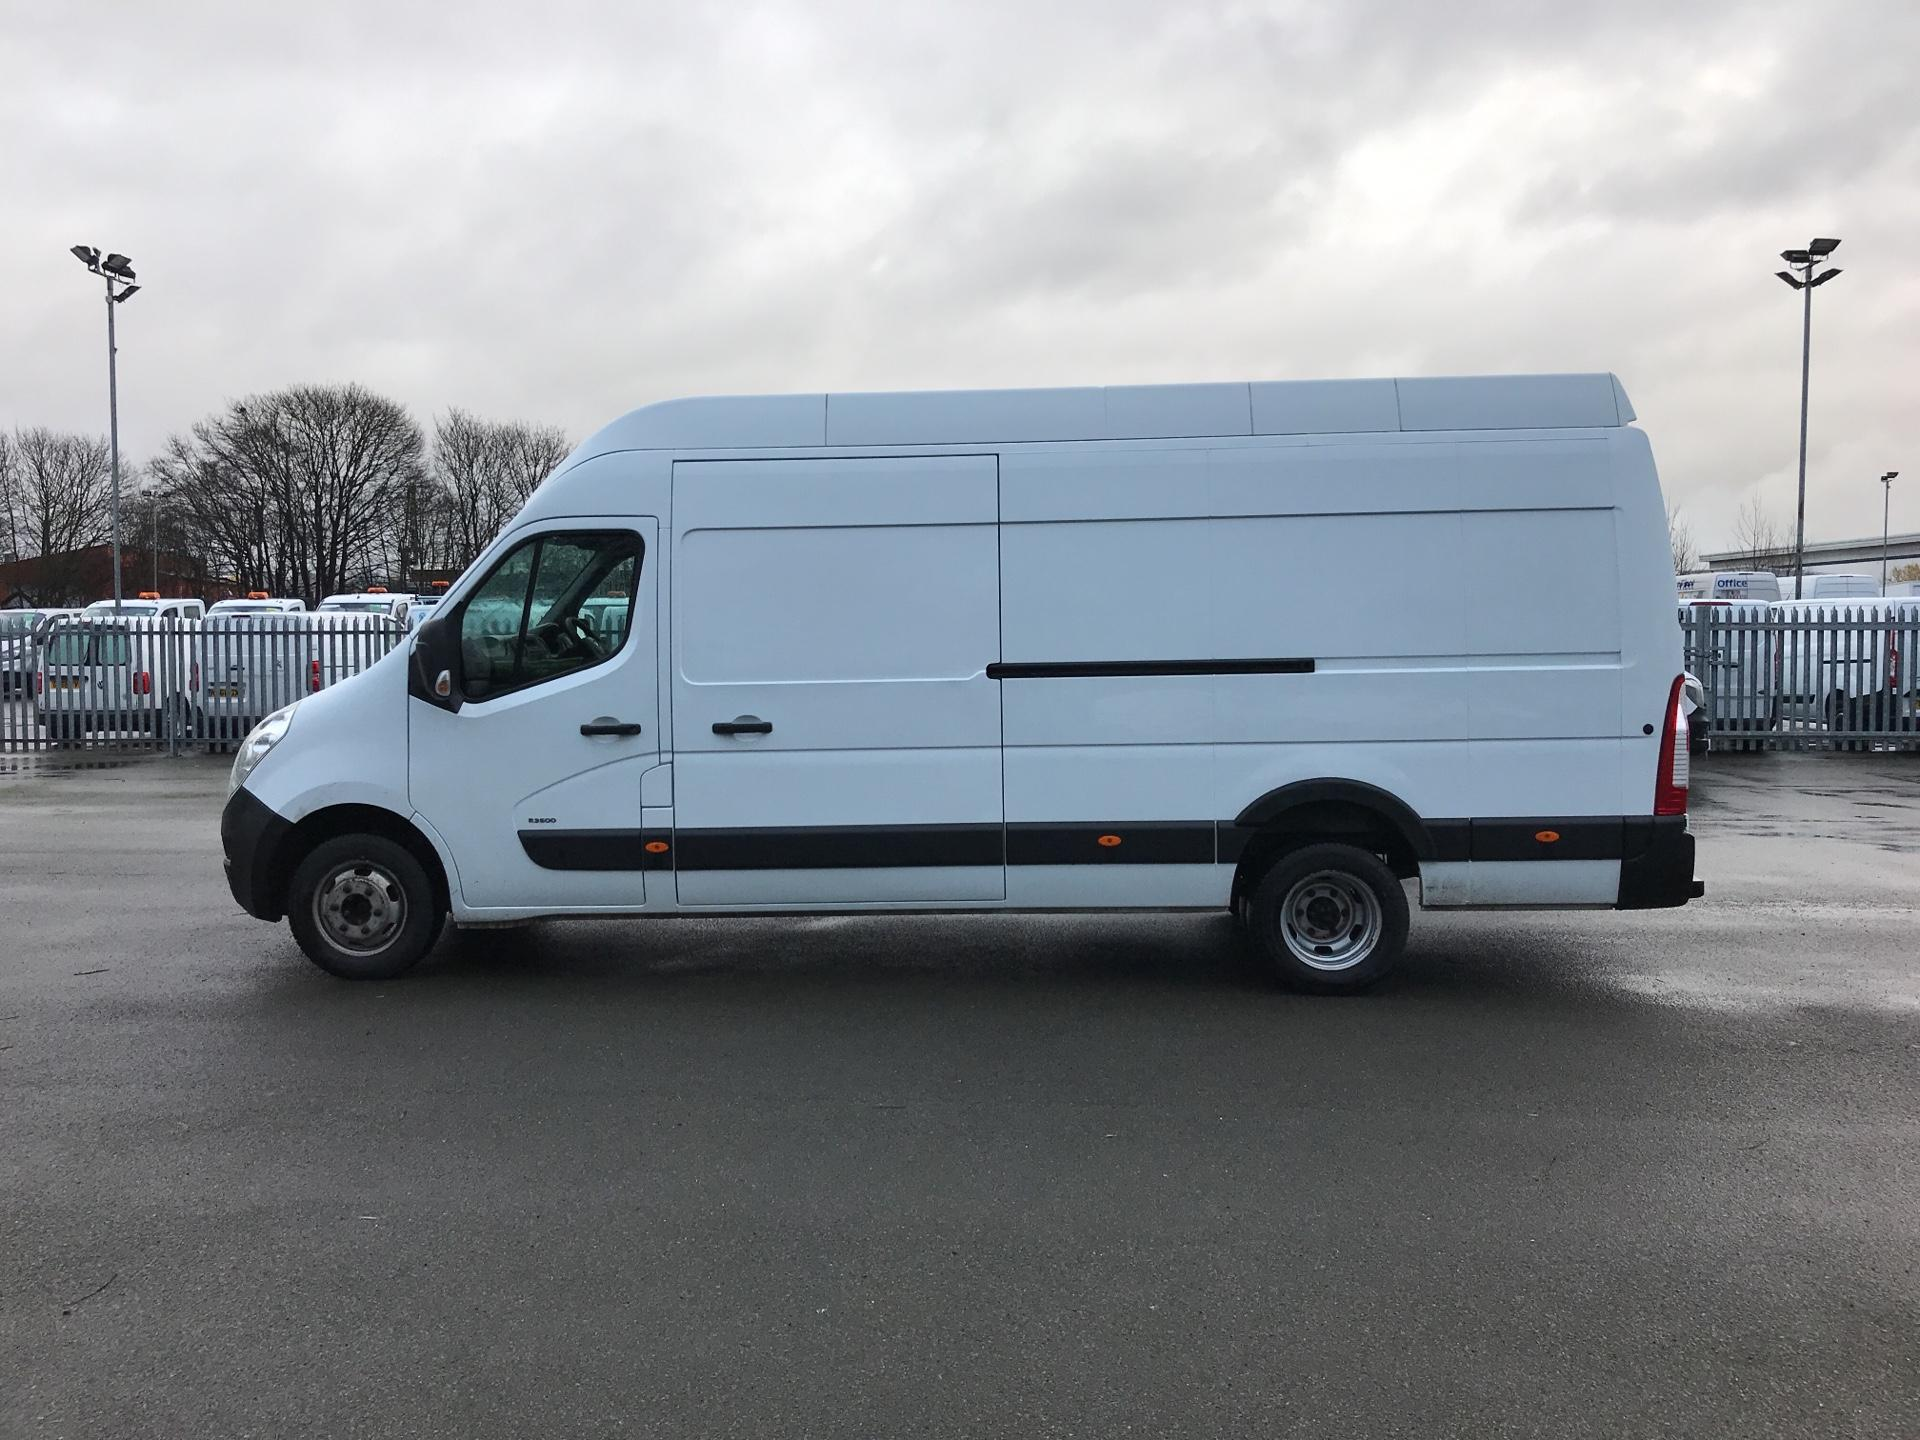 2015 Vauxhall Movano 35 L3 H3 125PS EURO 5 *VALUE RANGE VEHICLE - CONDITION REFLECTED IN PRICE* (DL65CVK) Image 6